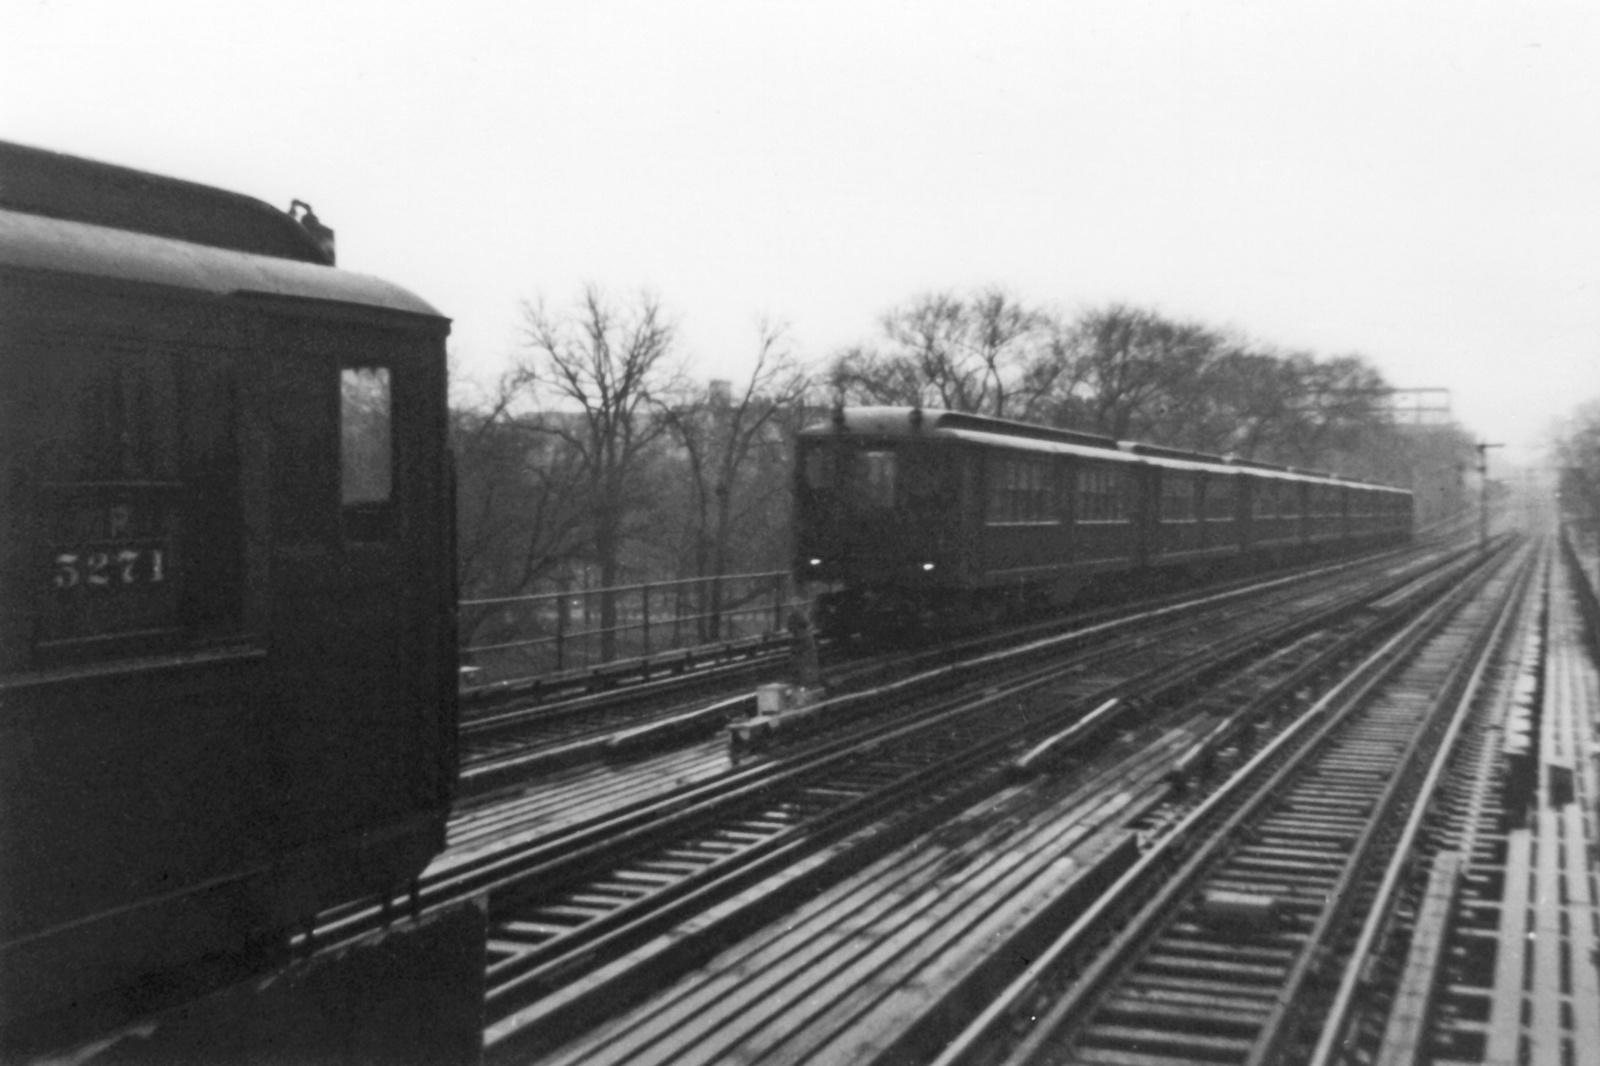 (343k, 1600x1066)<br><b>Country:</b> United States<br><b>City:</b> New York<br><b>System:</b> New York City Transit<br><b>Line:</b> IRT Woodlawn Line<br><b>Location:</b> Kingsbridge Road <br><b>Car:</b> Low-V 5271 <br><b>Collection of:</b> Nicholas Fabrizio<br><b>Viewed (this week/total):</b> 1 / 286